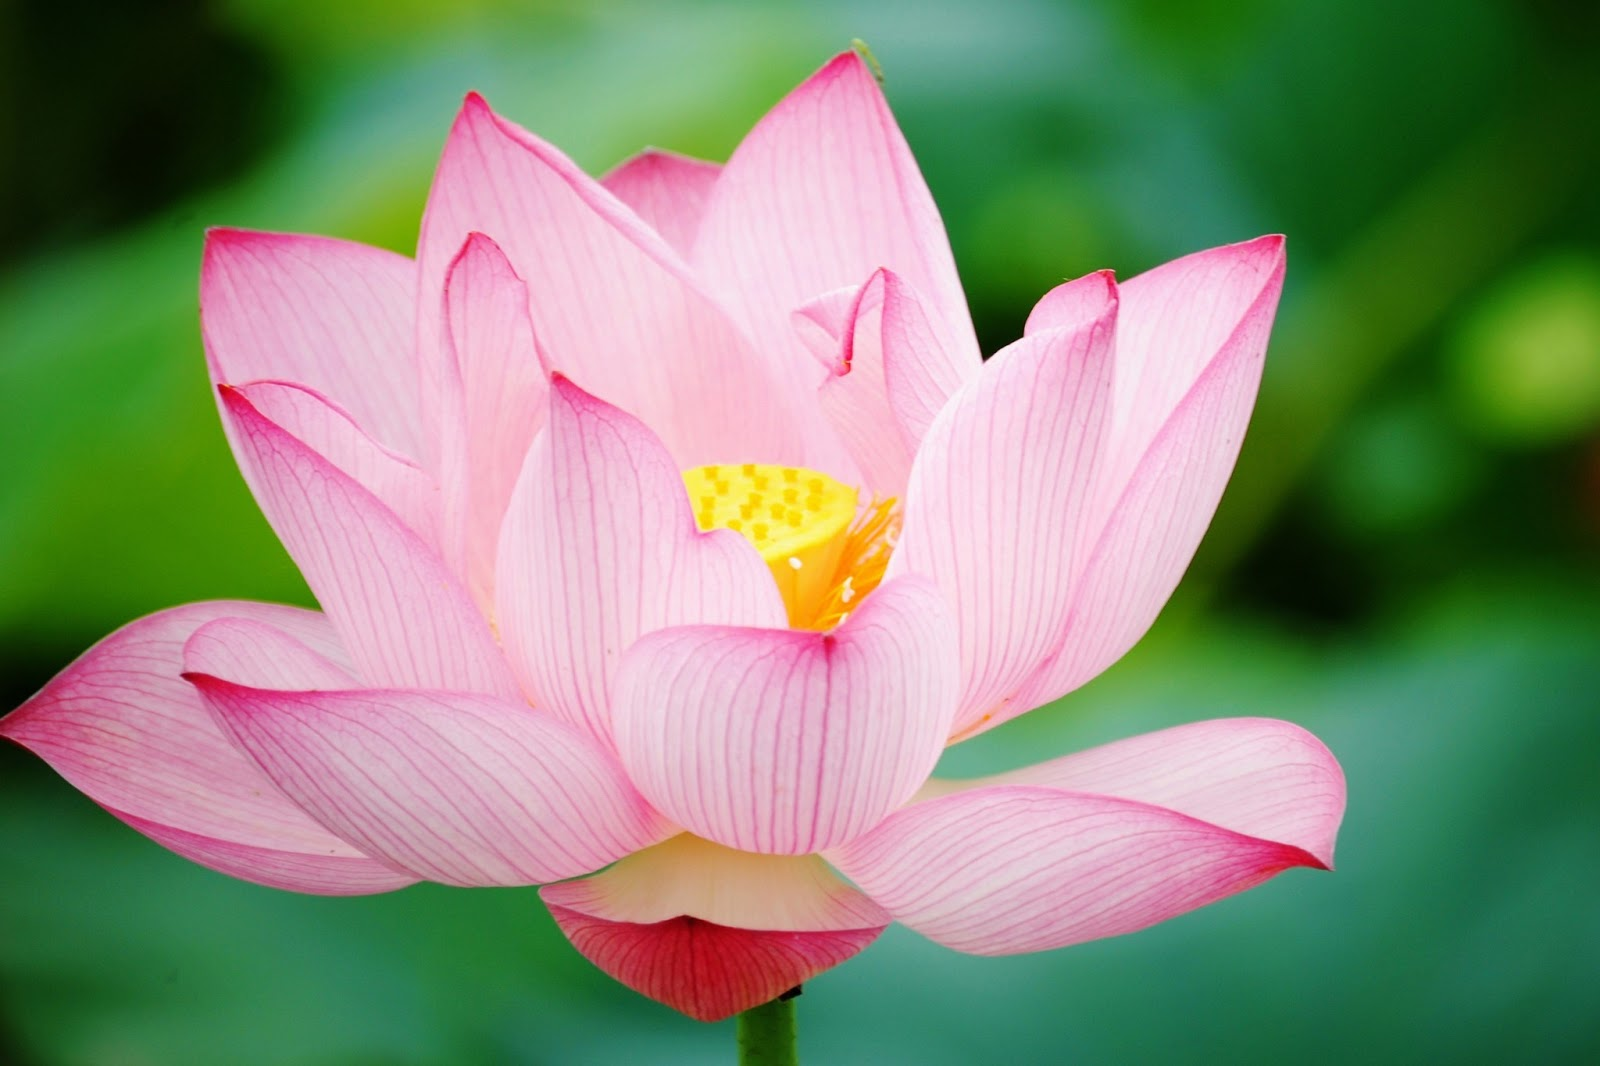 Download Lotus Flower Hd Wallpapers Hd Wallpapers High Definition